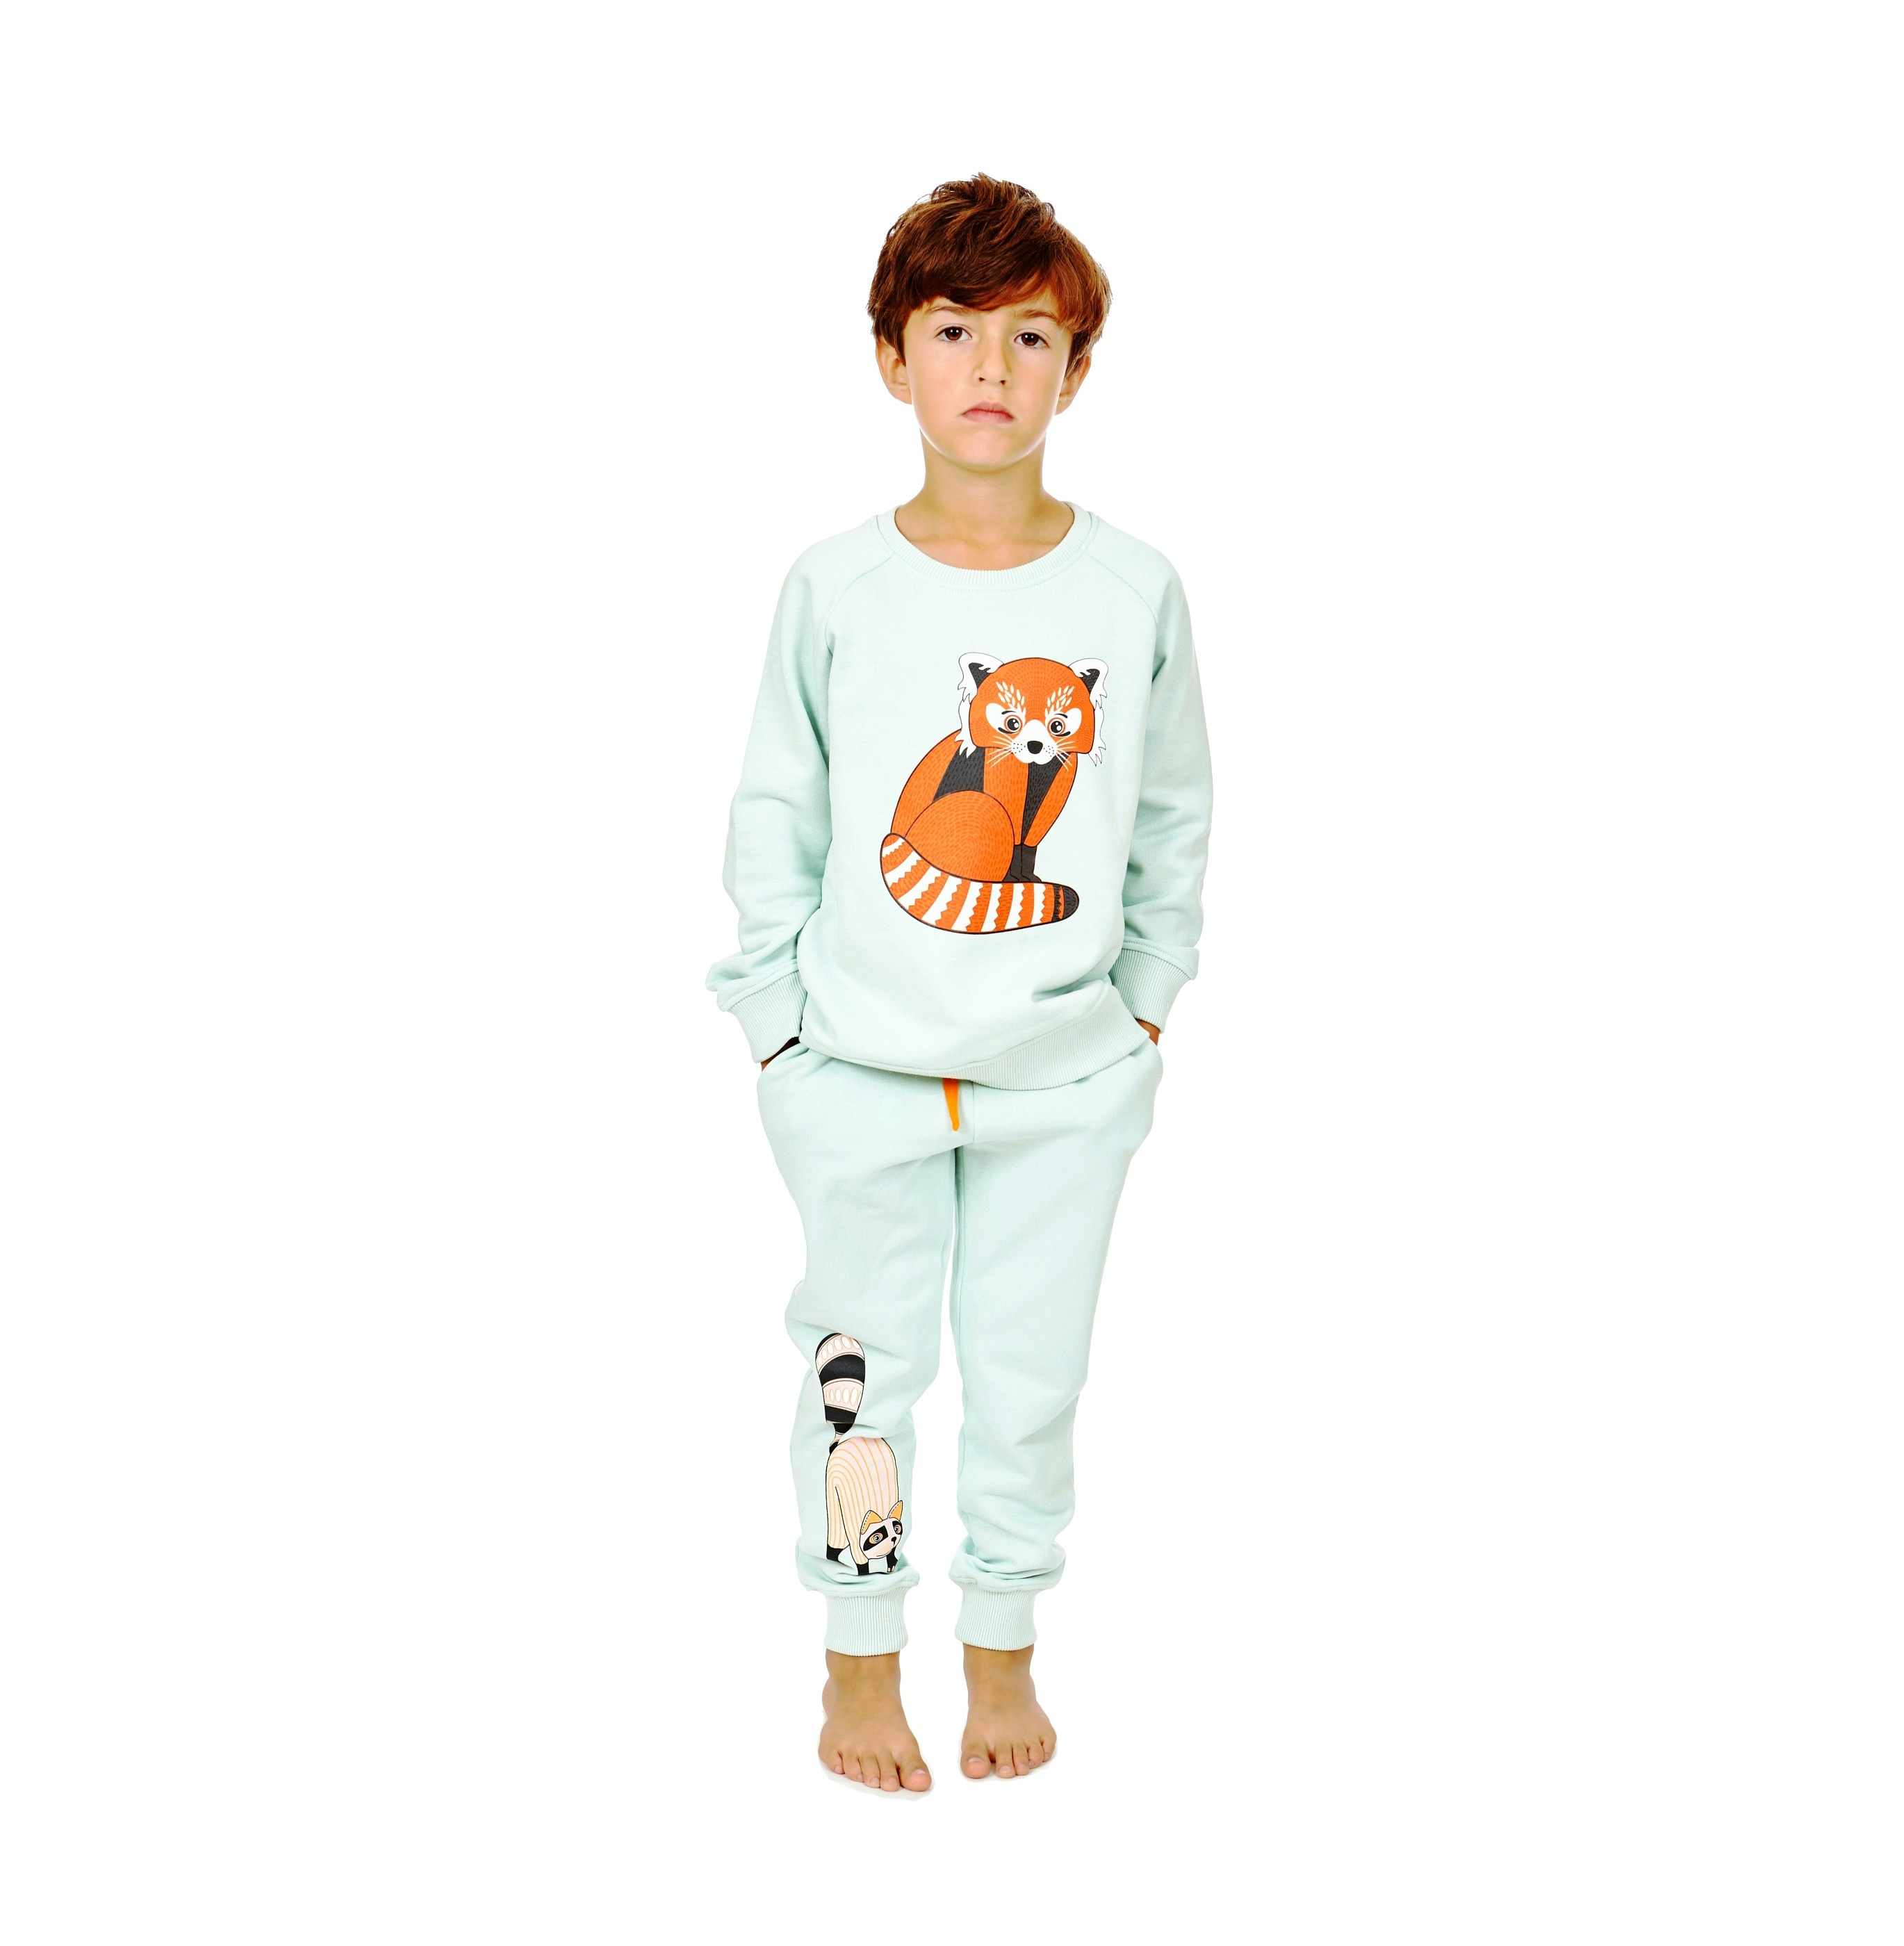 Sweatshirt Red Panda + Sweatpants Oaxacan print 2